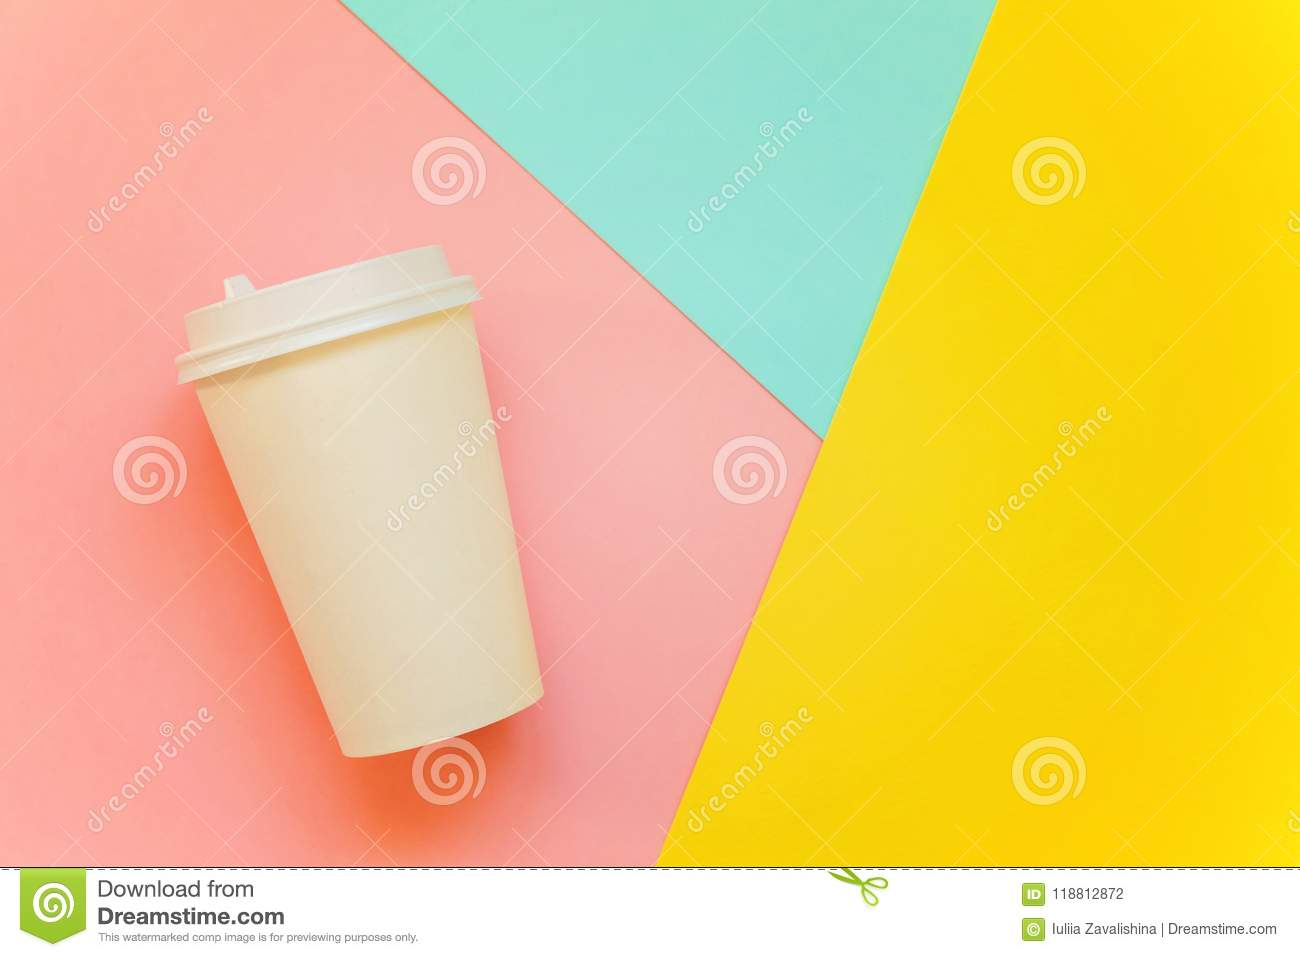 Paper cup of coffee on colorful background